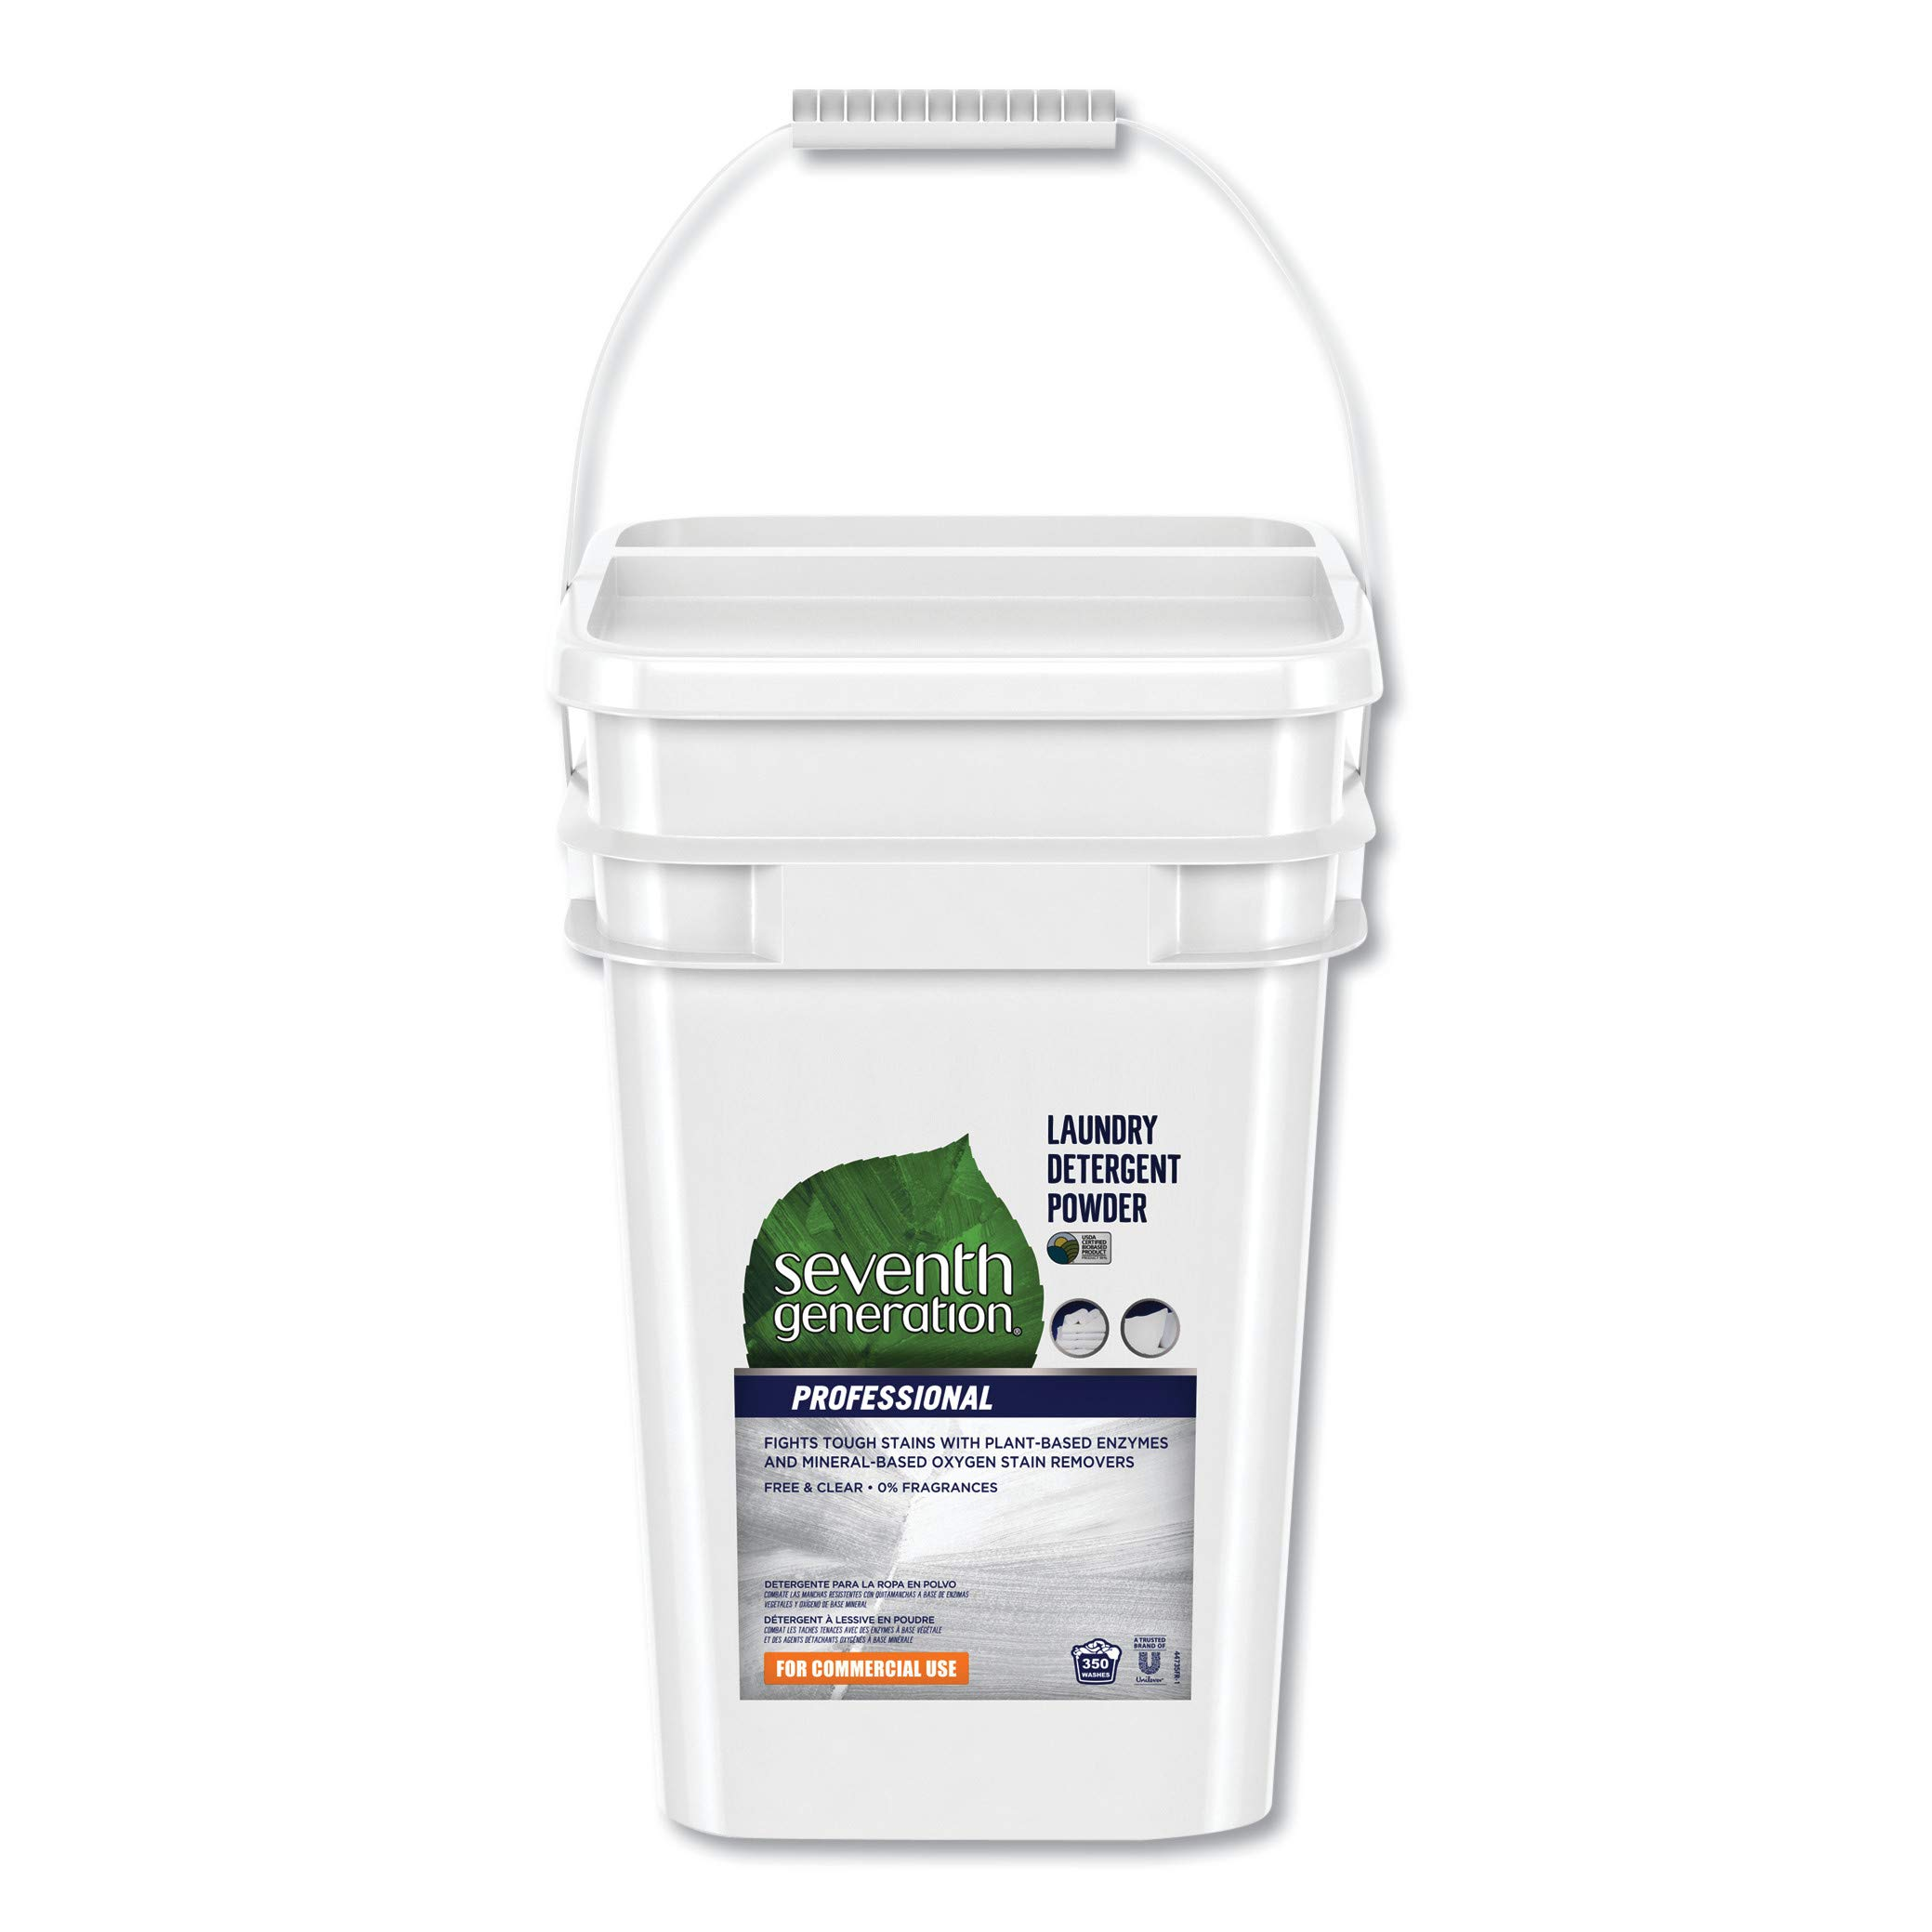 Seventh Generation Professional Free and Clear Powdered Laundry Detergent, 35-Lb Pail by Seventh Generation